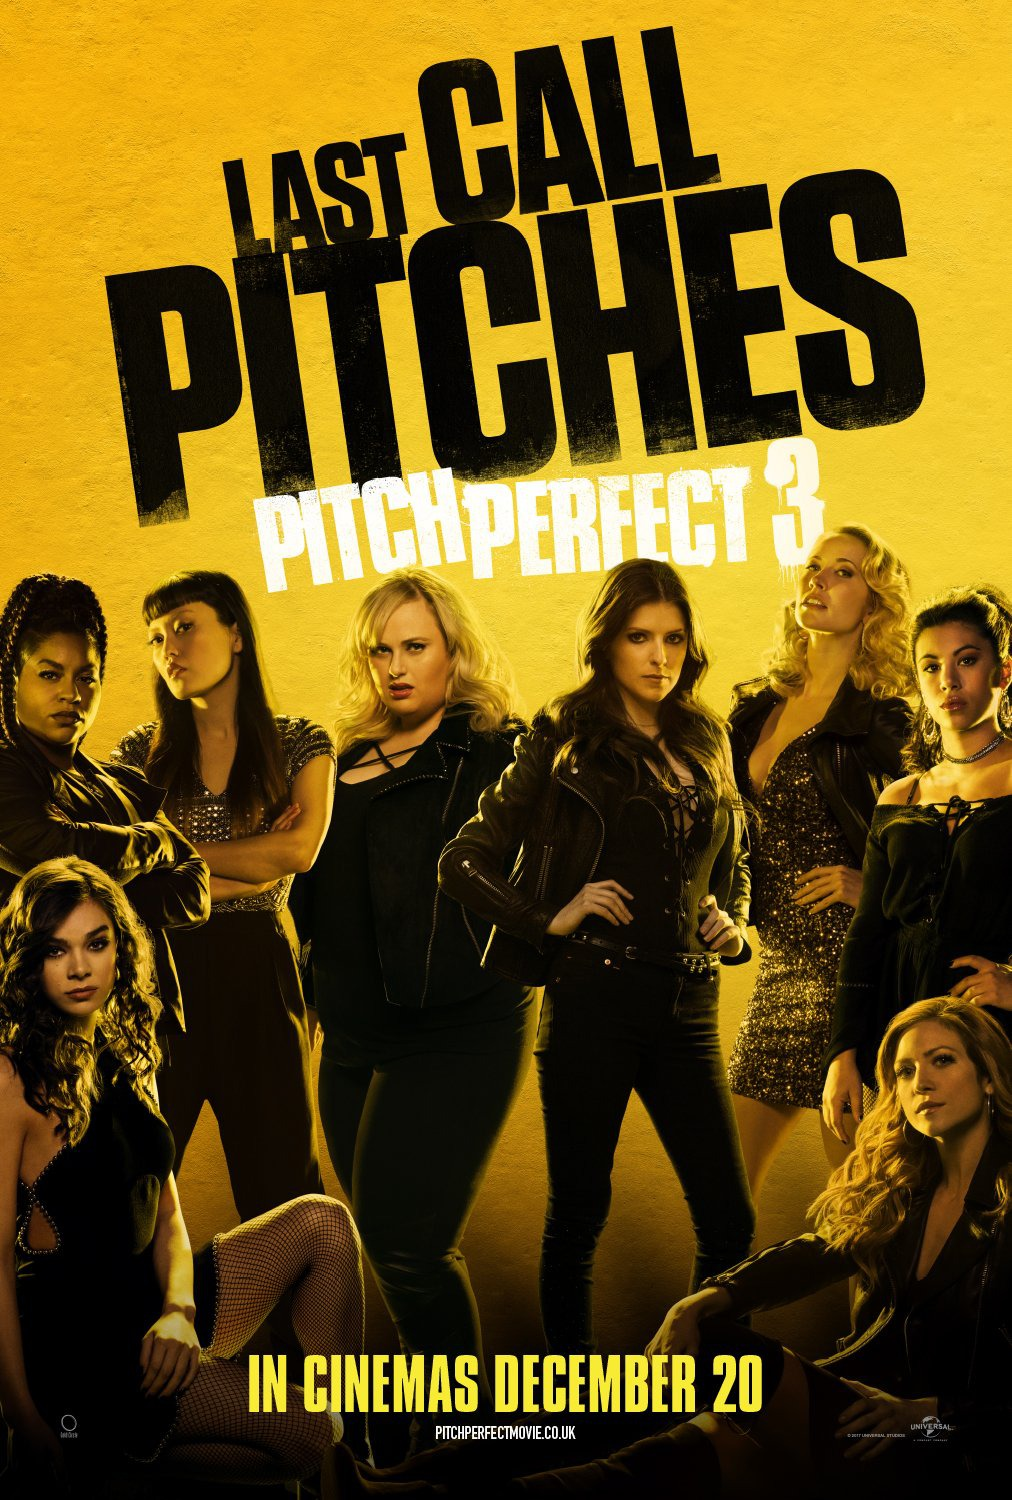 pitch perfect 3 movie4k